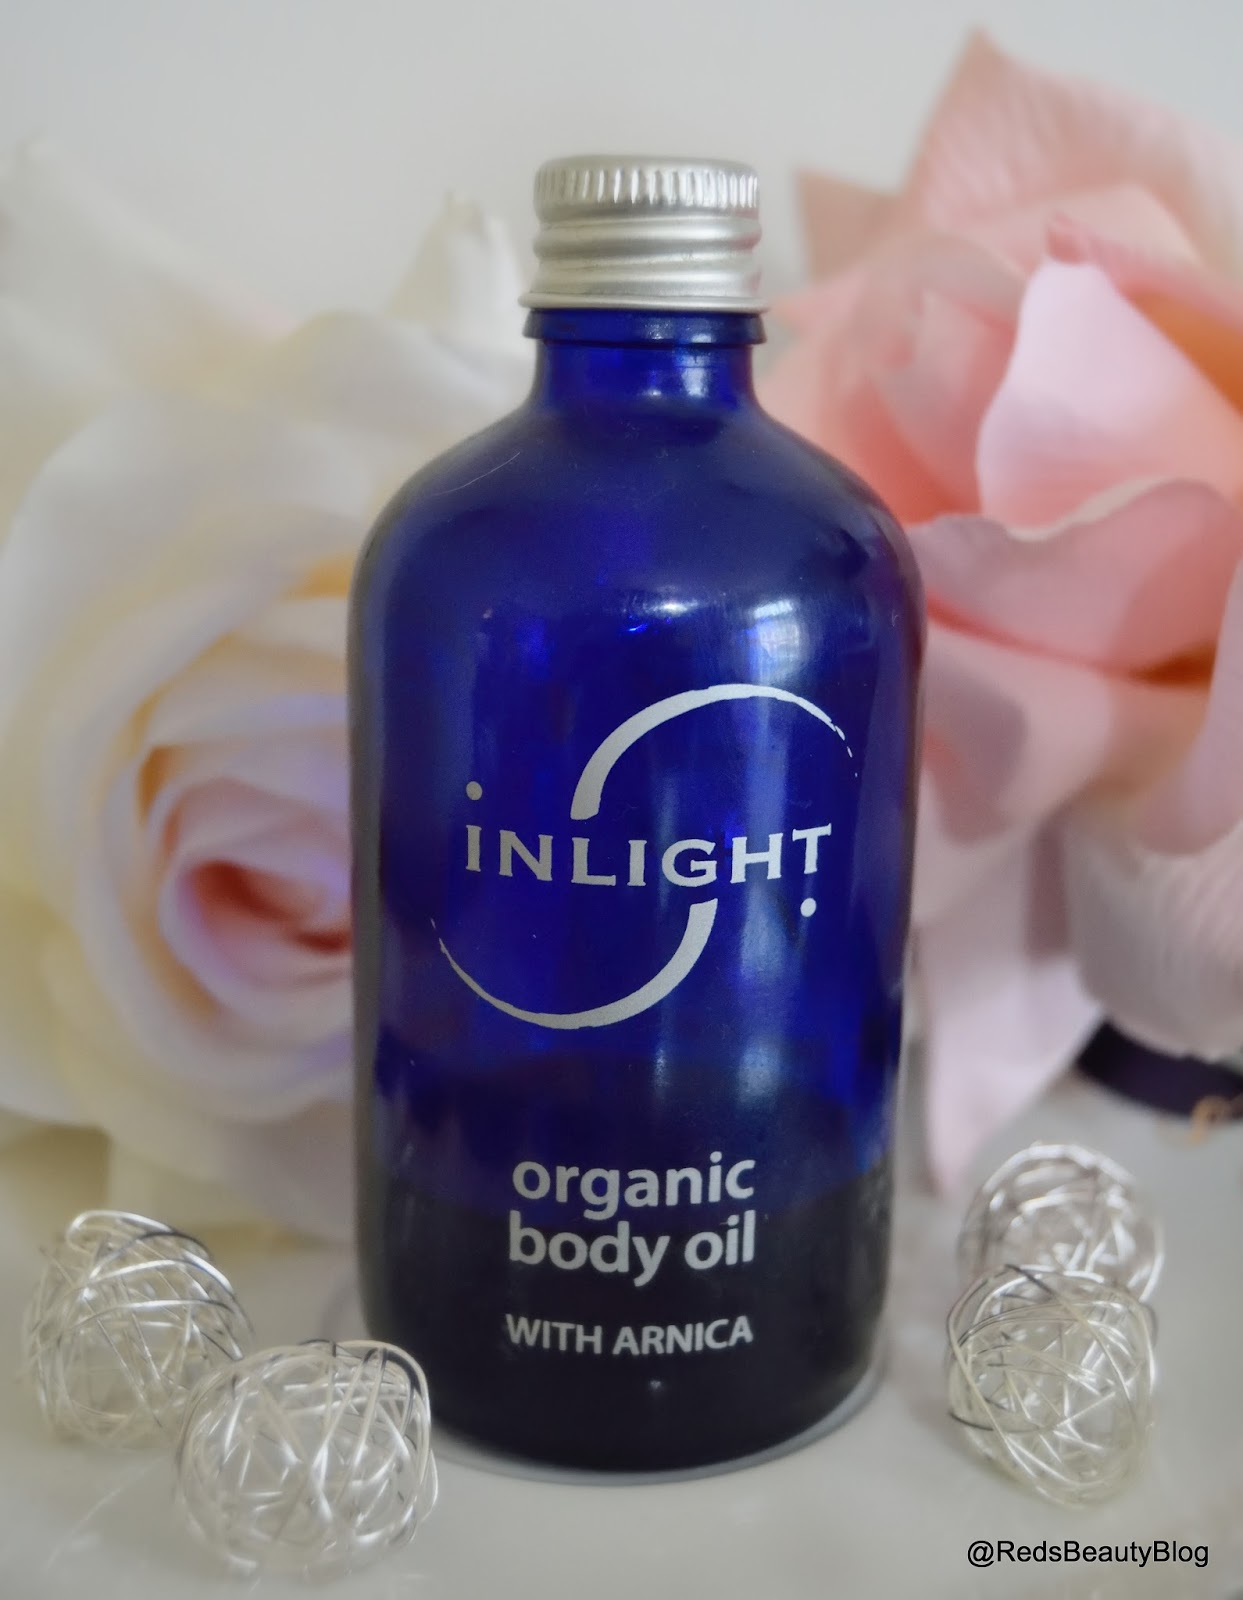 a picture of Inlight body oil with arnica